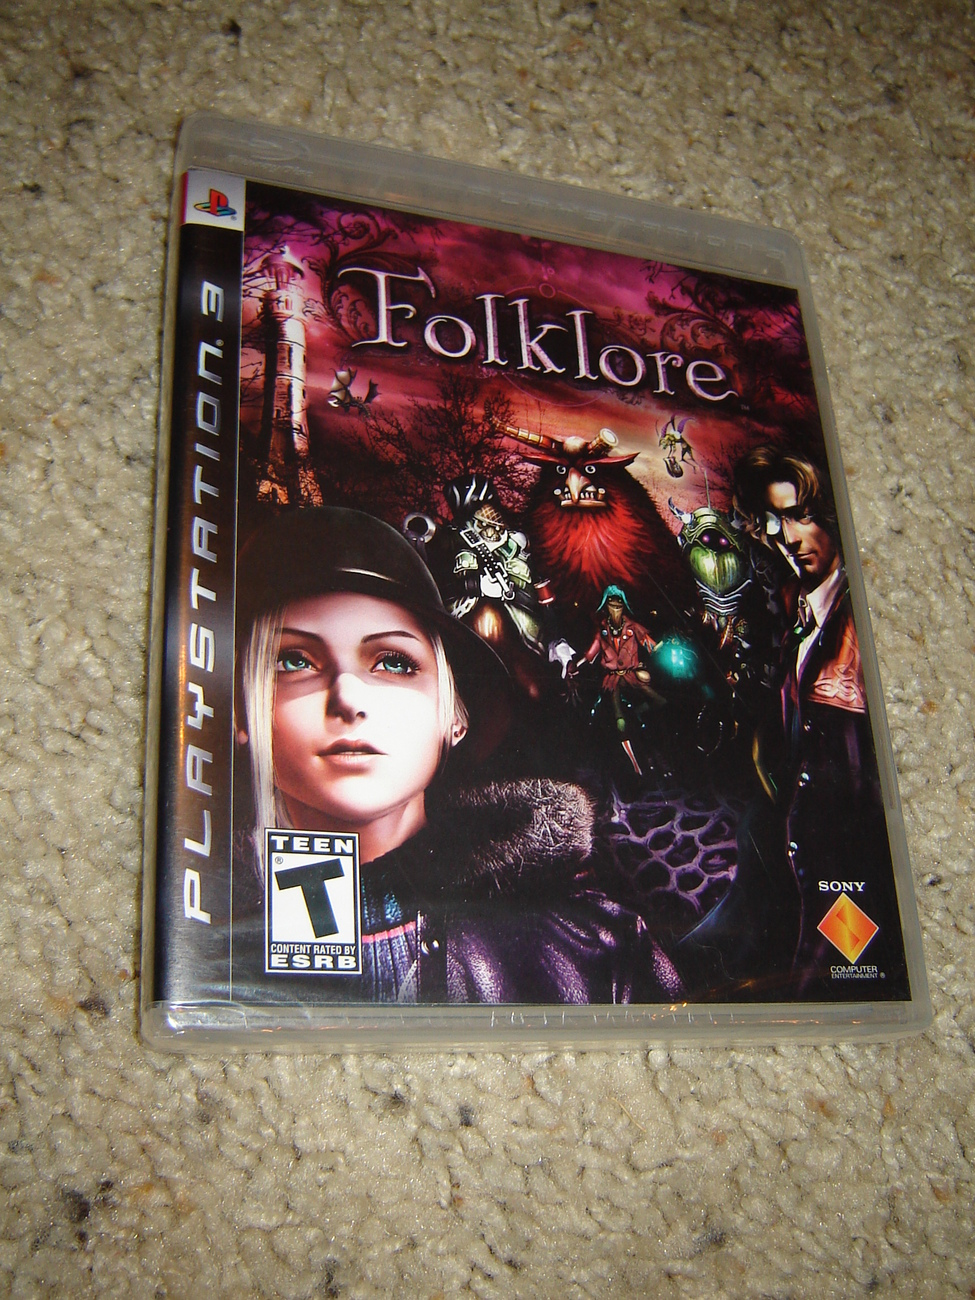 New Action Games For Ps3 : Folklore ps playstation action rpg game new sealed